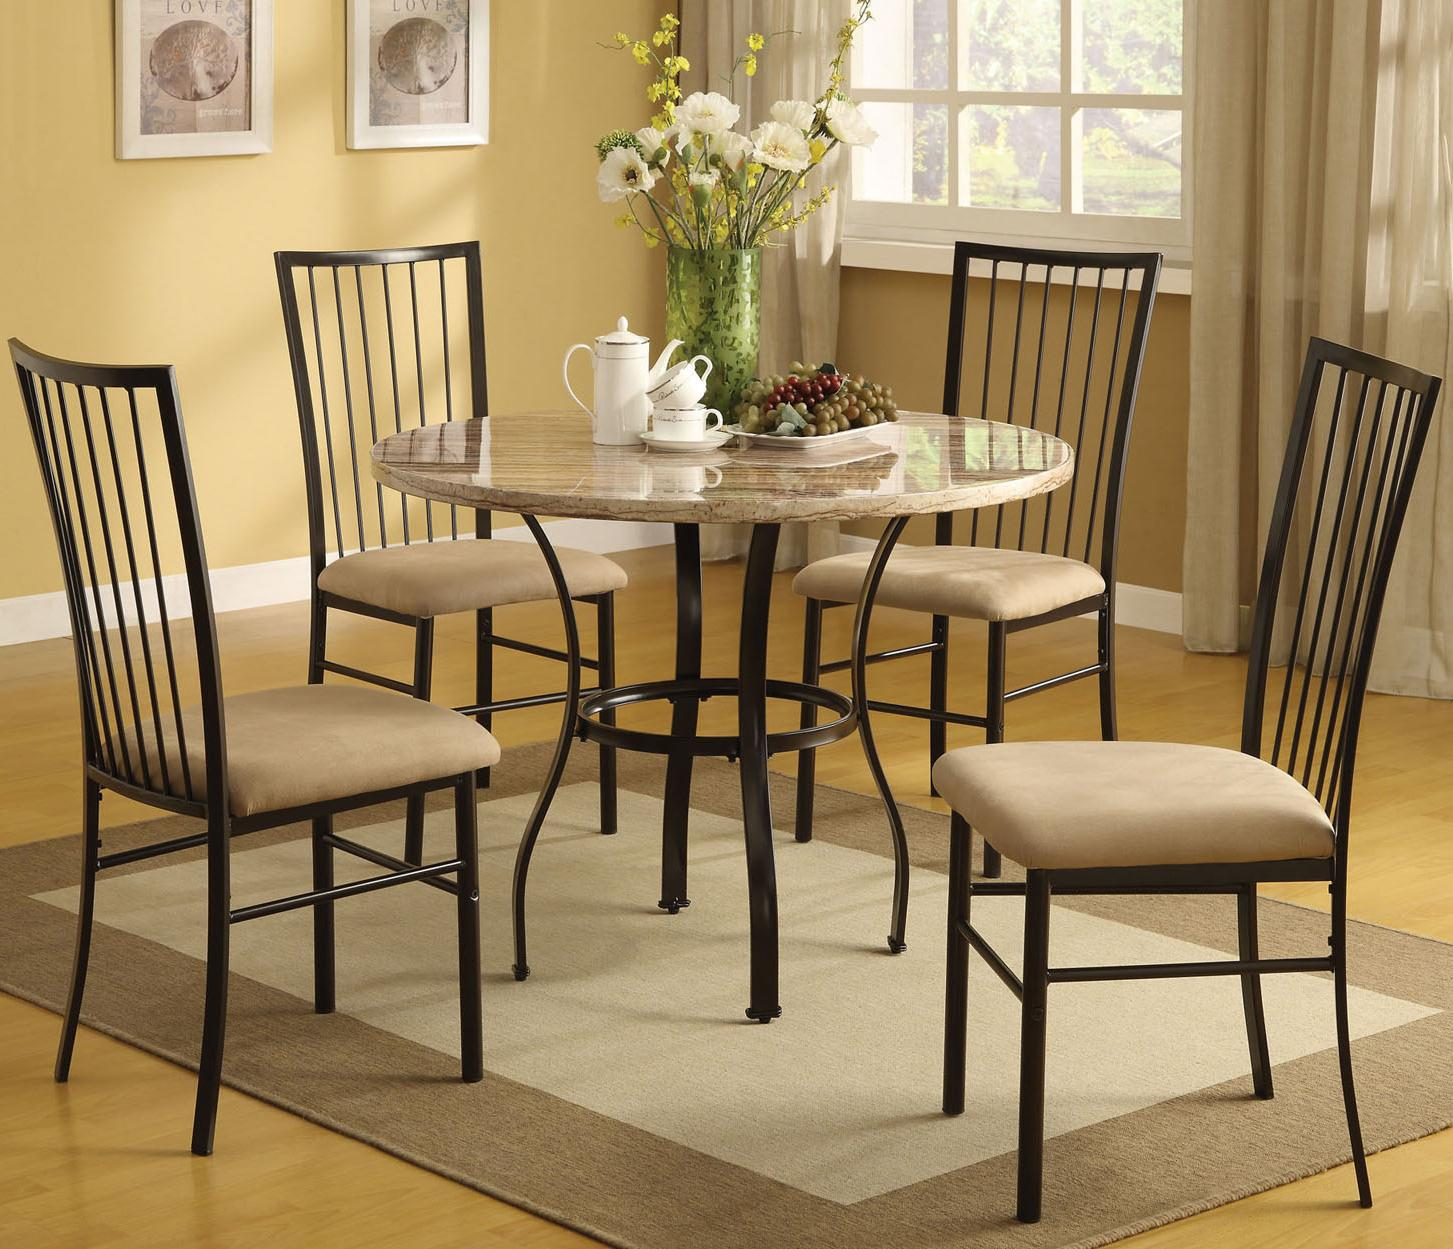 Acme Furniture Darell 5-Piece Faux Marble Dining Set - Item Number: 70295W